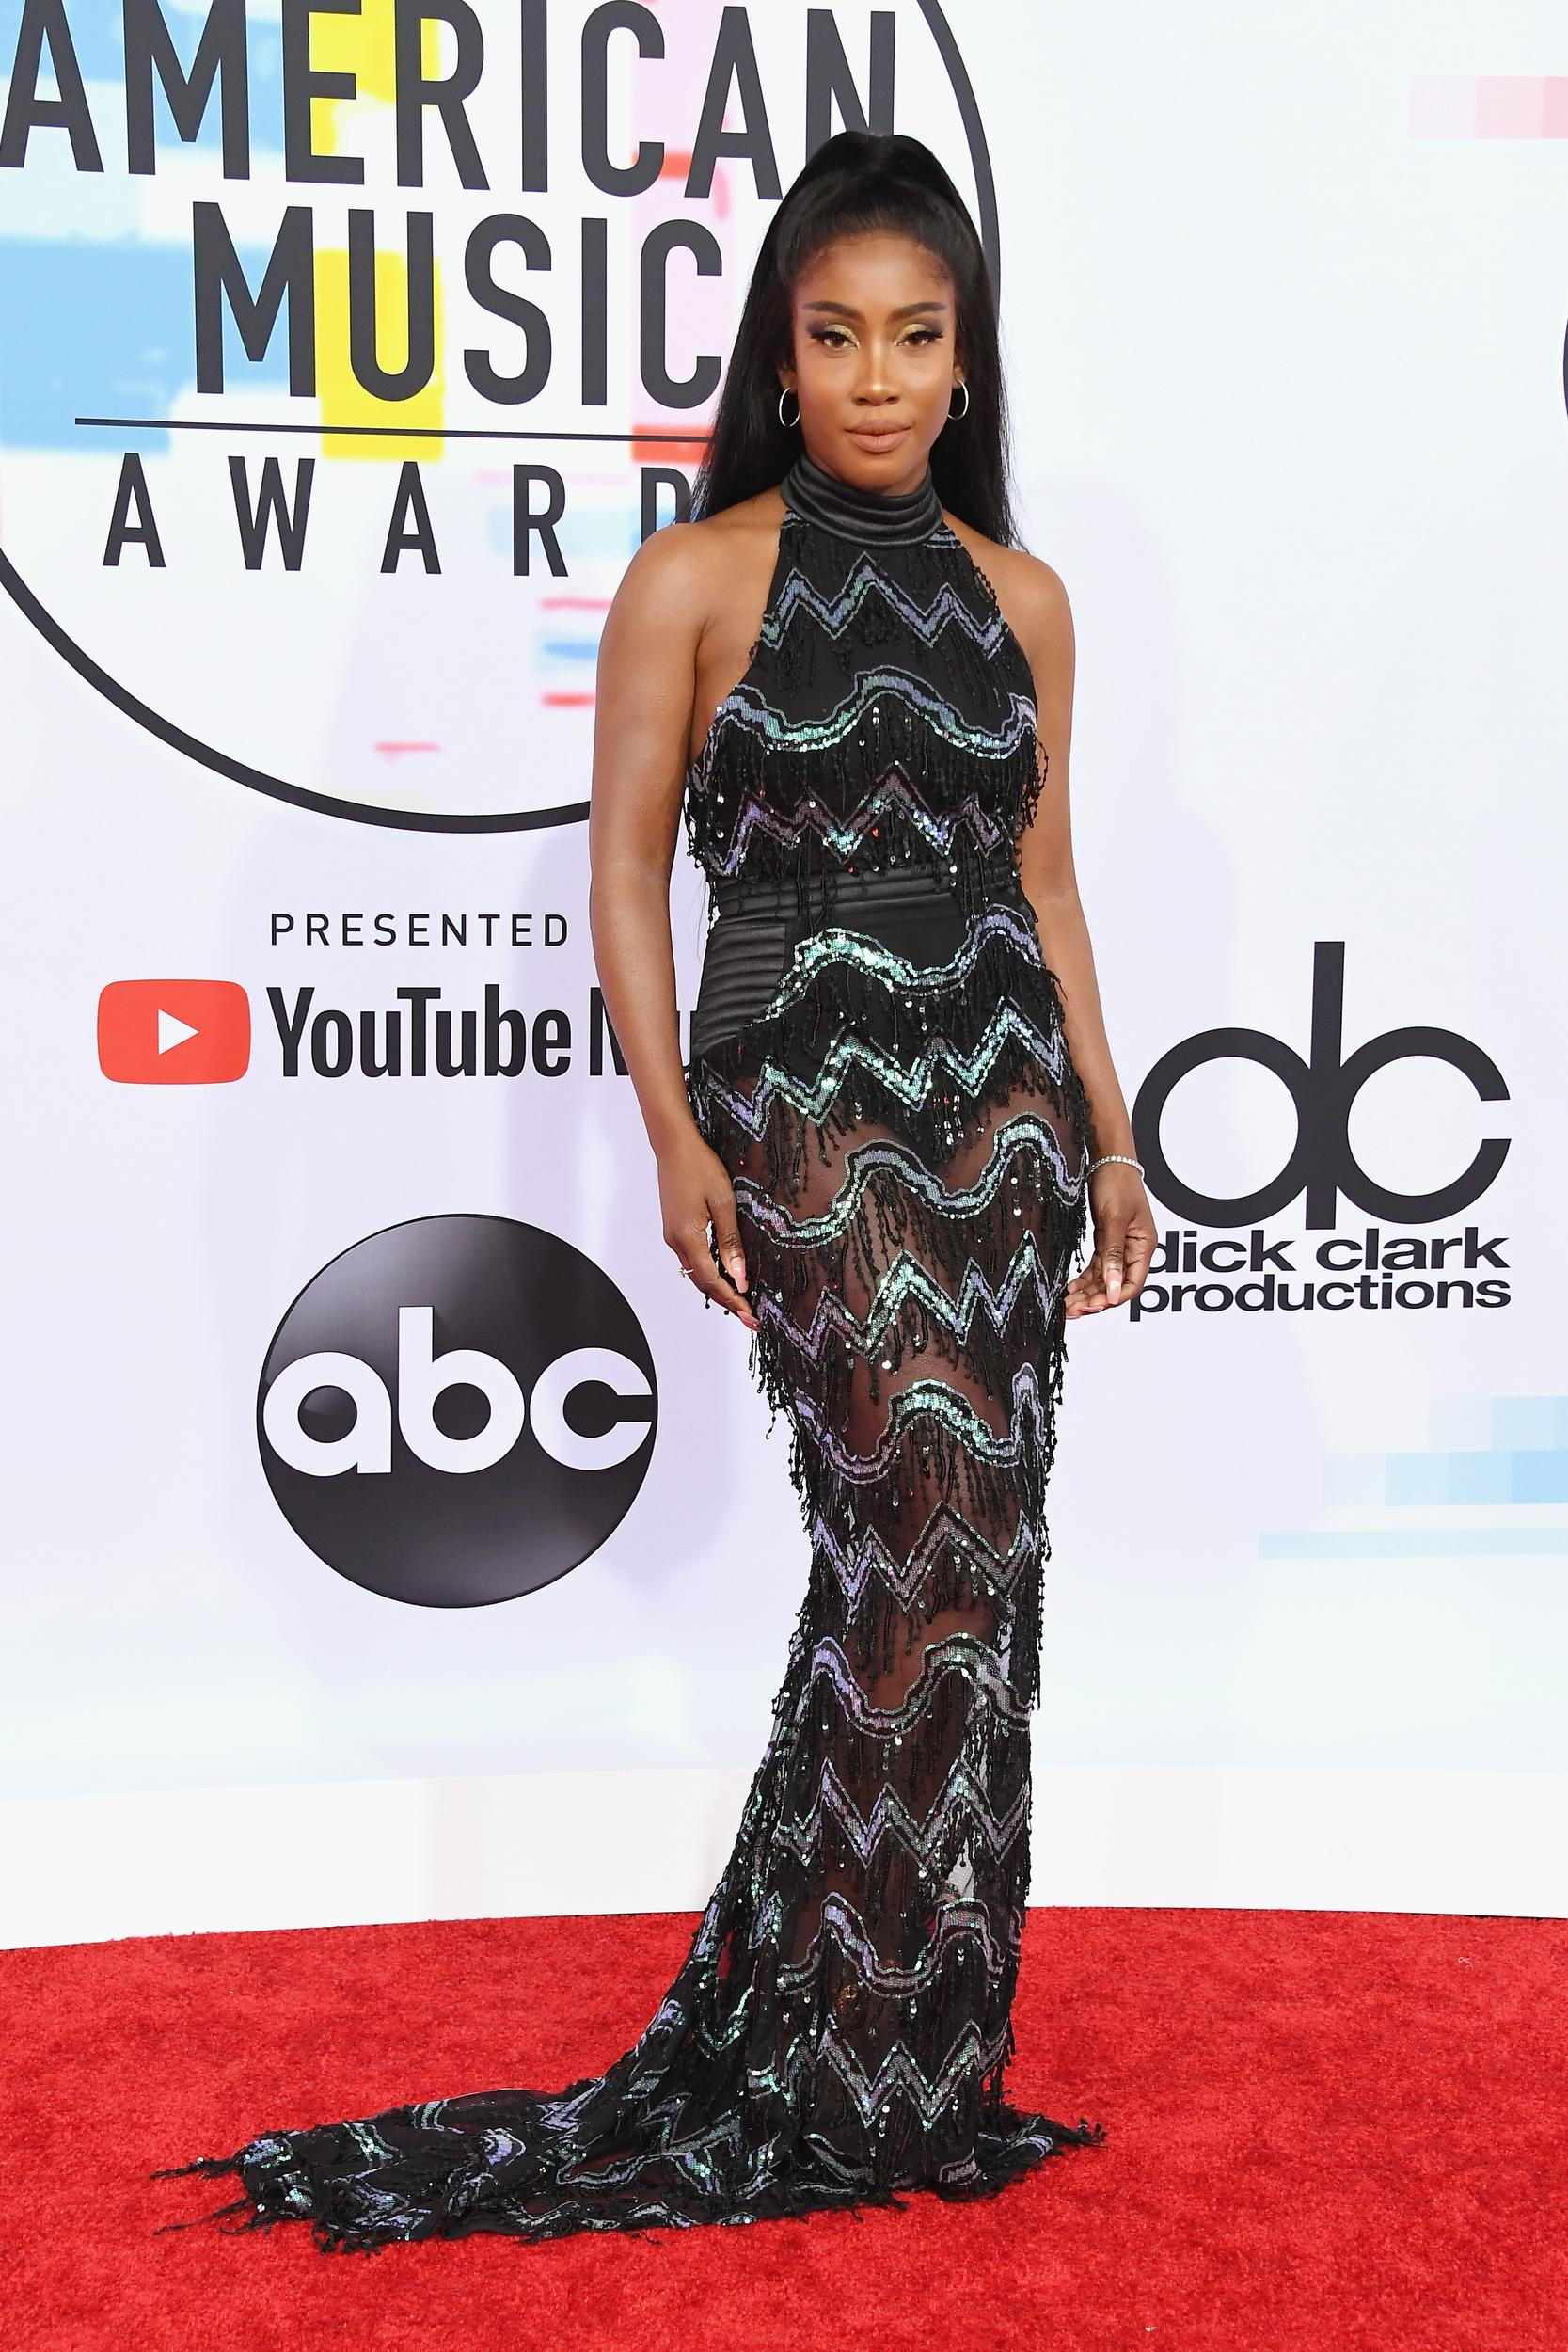 LOS ANGELES, CA - OCTOBER 09:  Sevyn Streeter attends the 2018 American Music Awards at Microsoft Theater on October 9, 2018 in Los Angeles, California.  (Photo by Steve Granitz/WireImage)